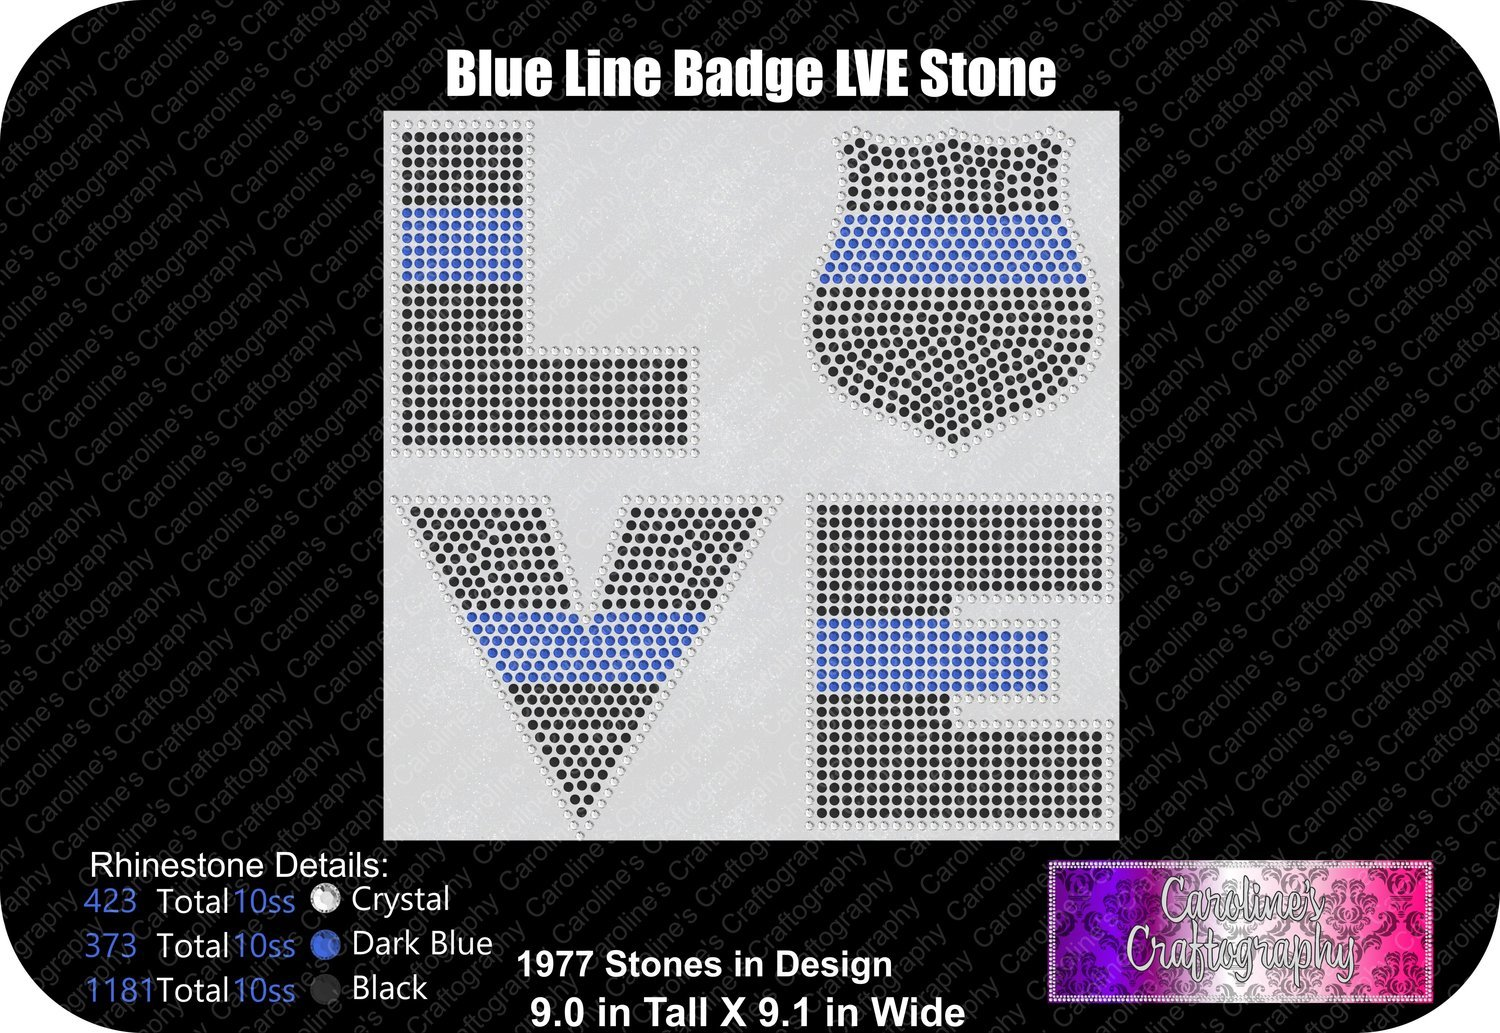 Blue Line Badge LVE Stone